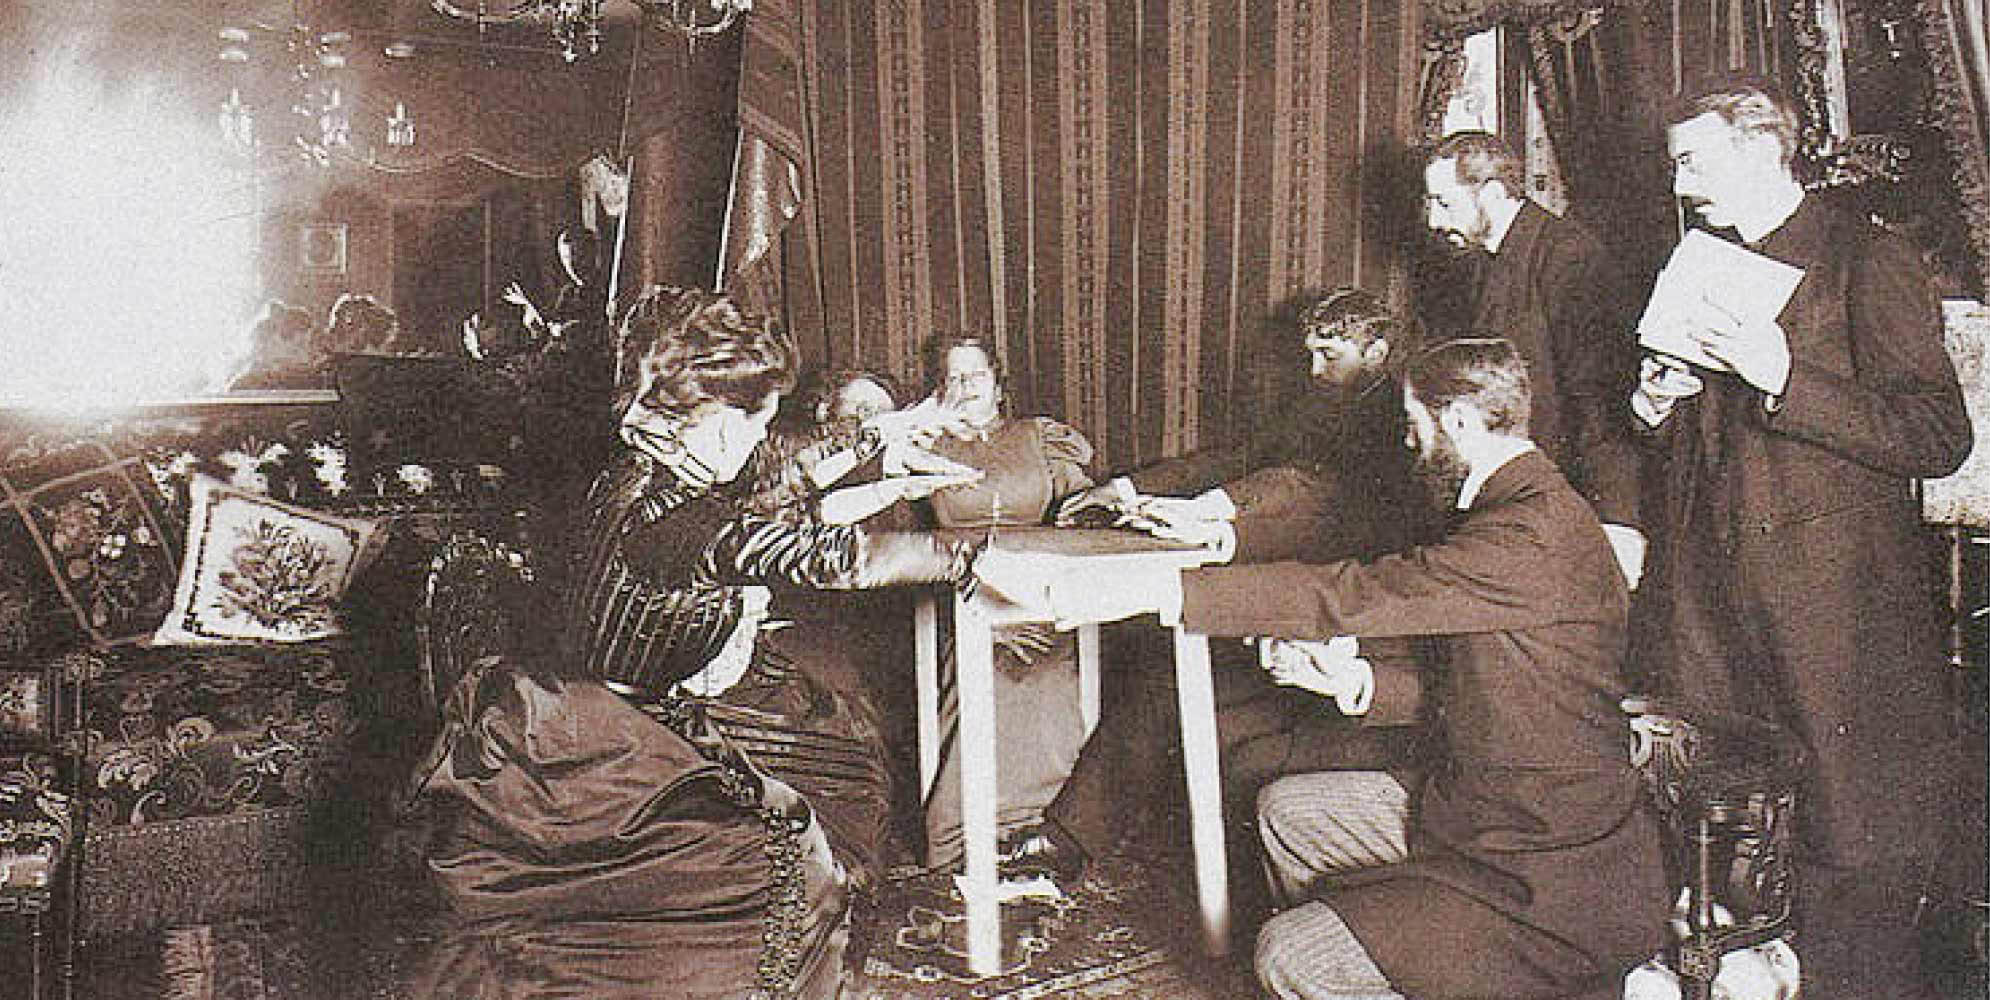 An old black-and-white image of four women and two men with their hands on a table